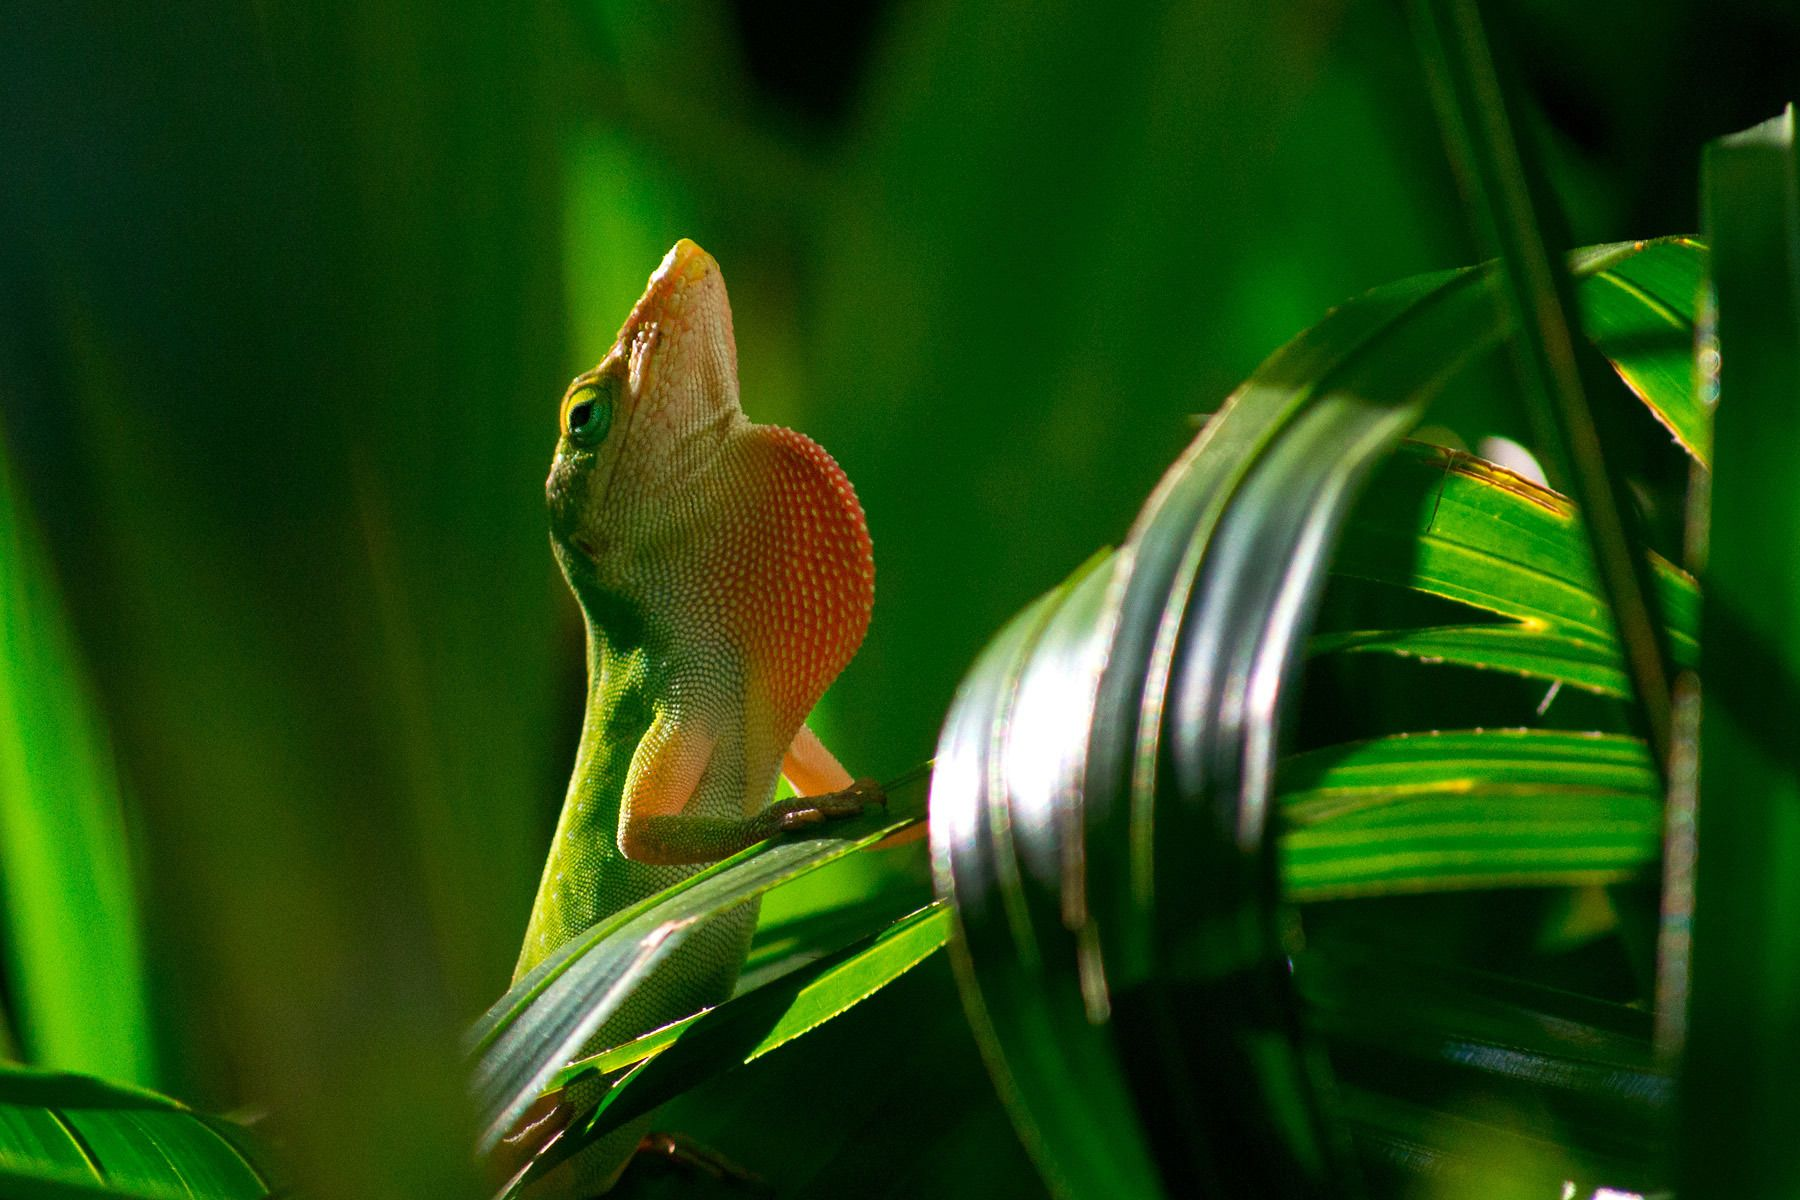 1green_anole_lizard.jpg